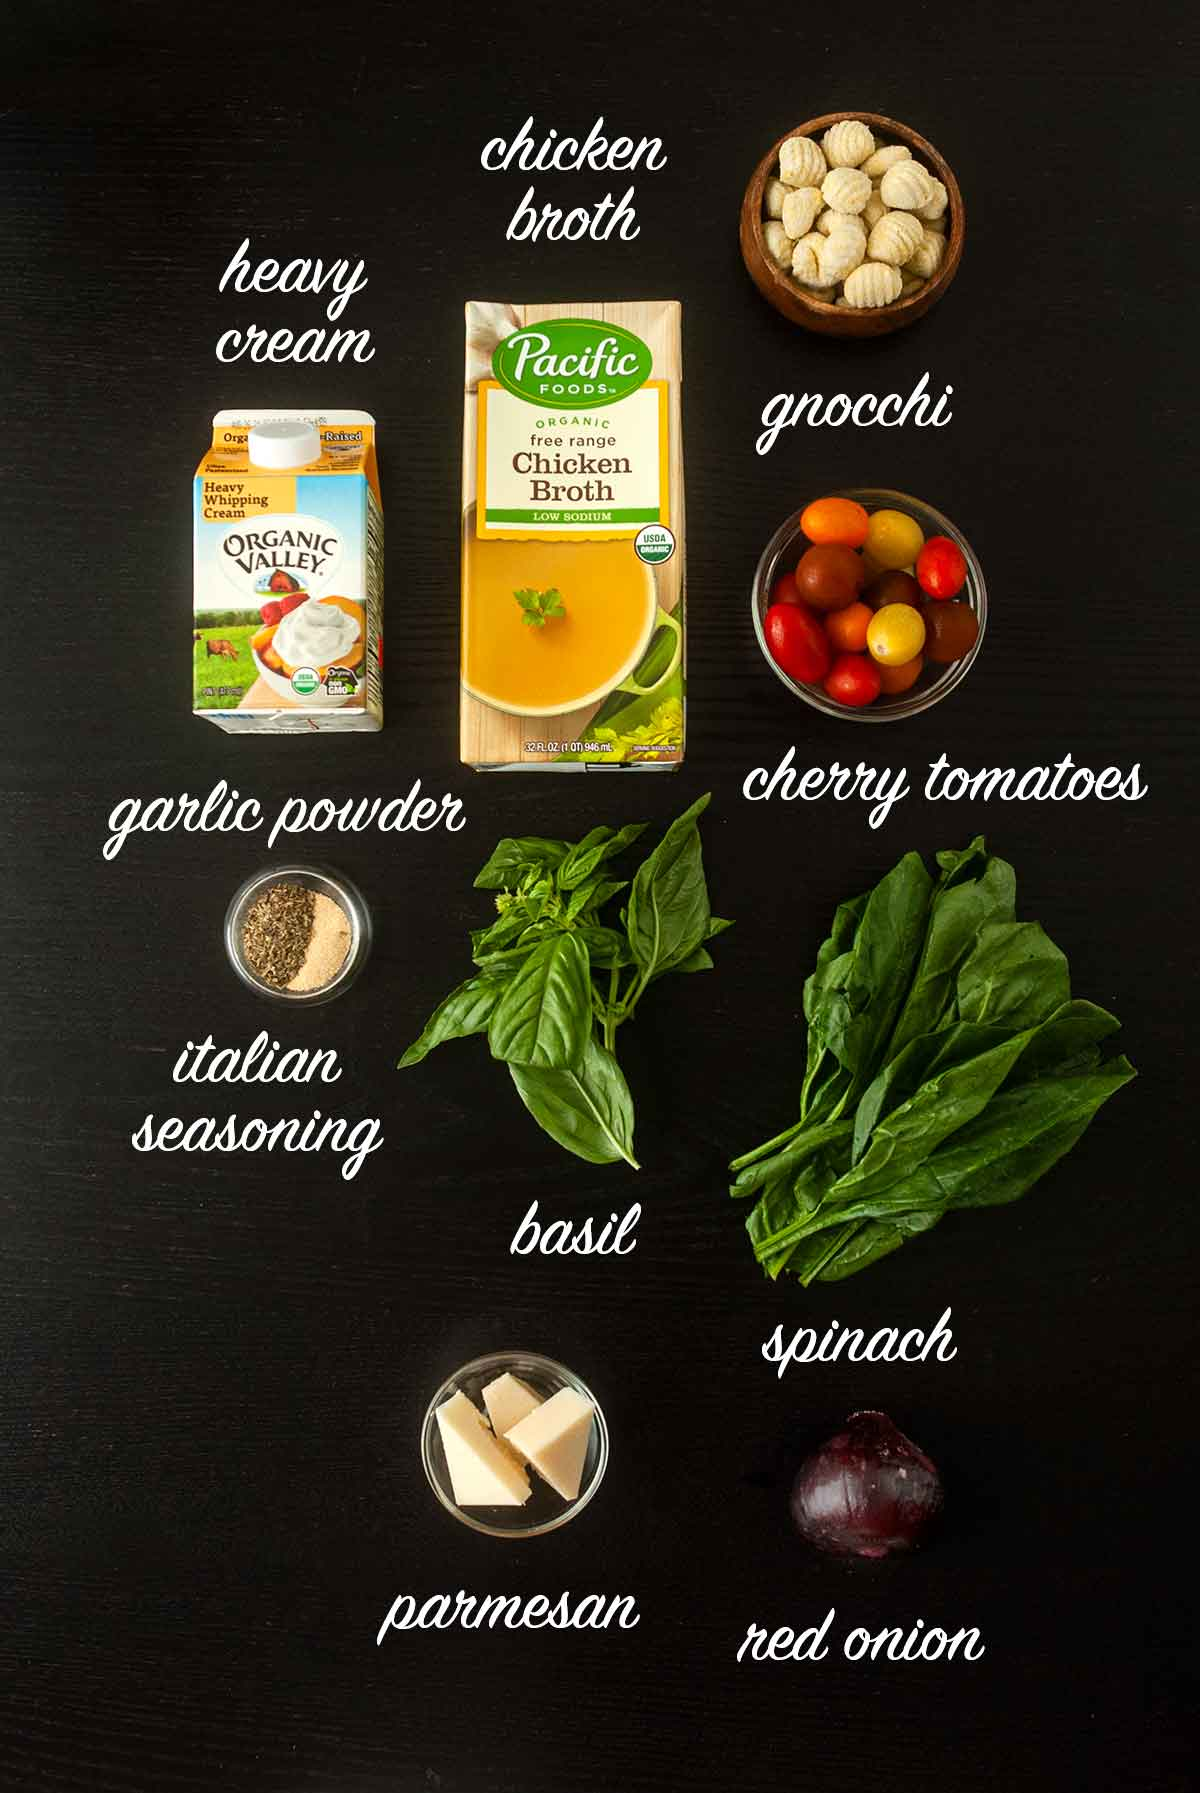 9 ingredients on a table with text labels describing what they are.